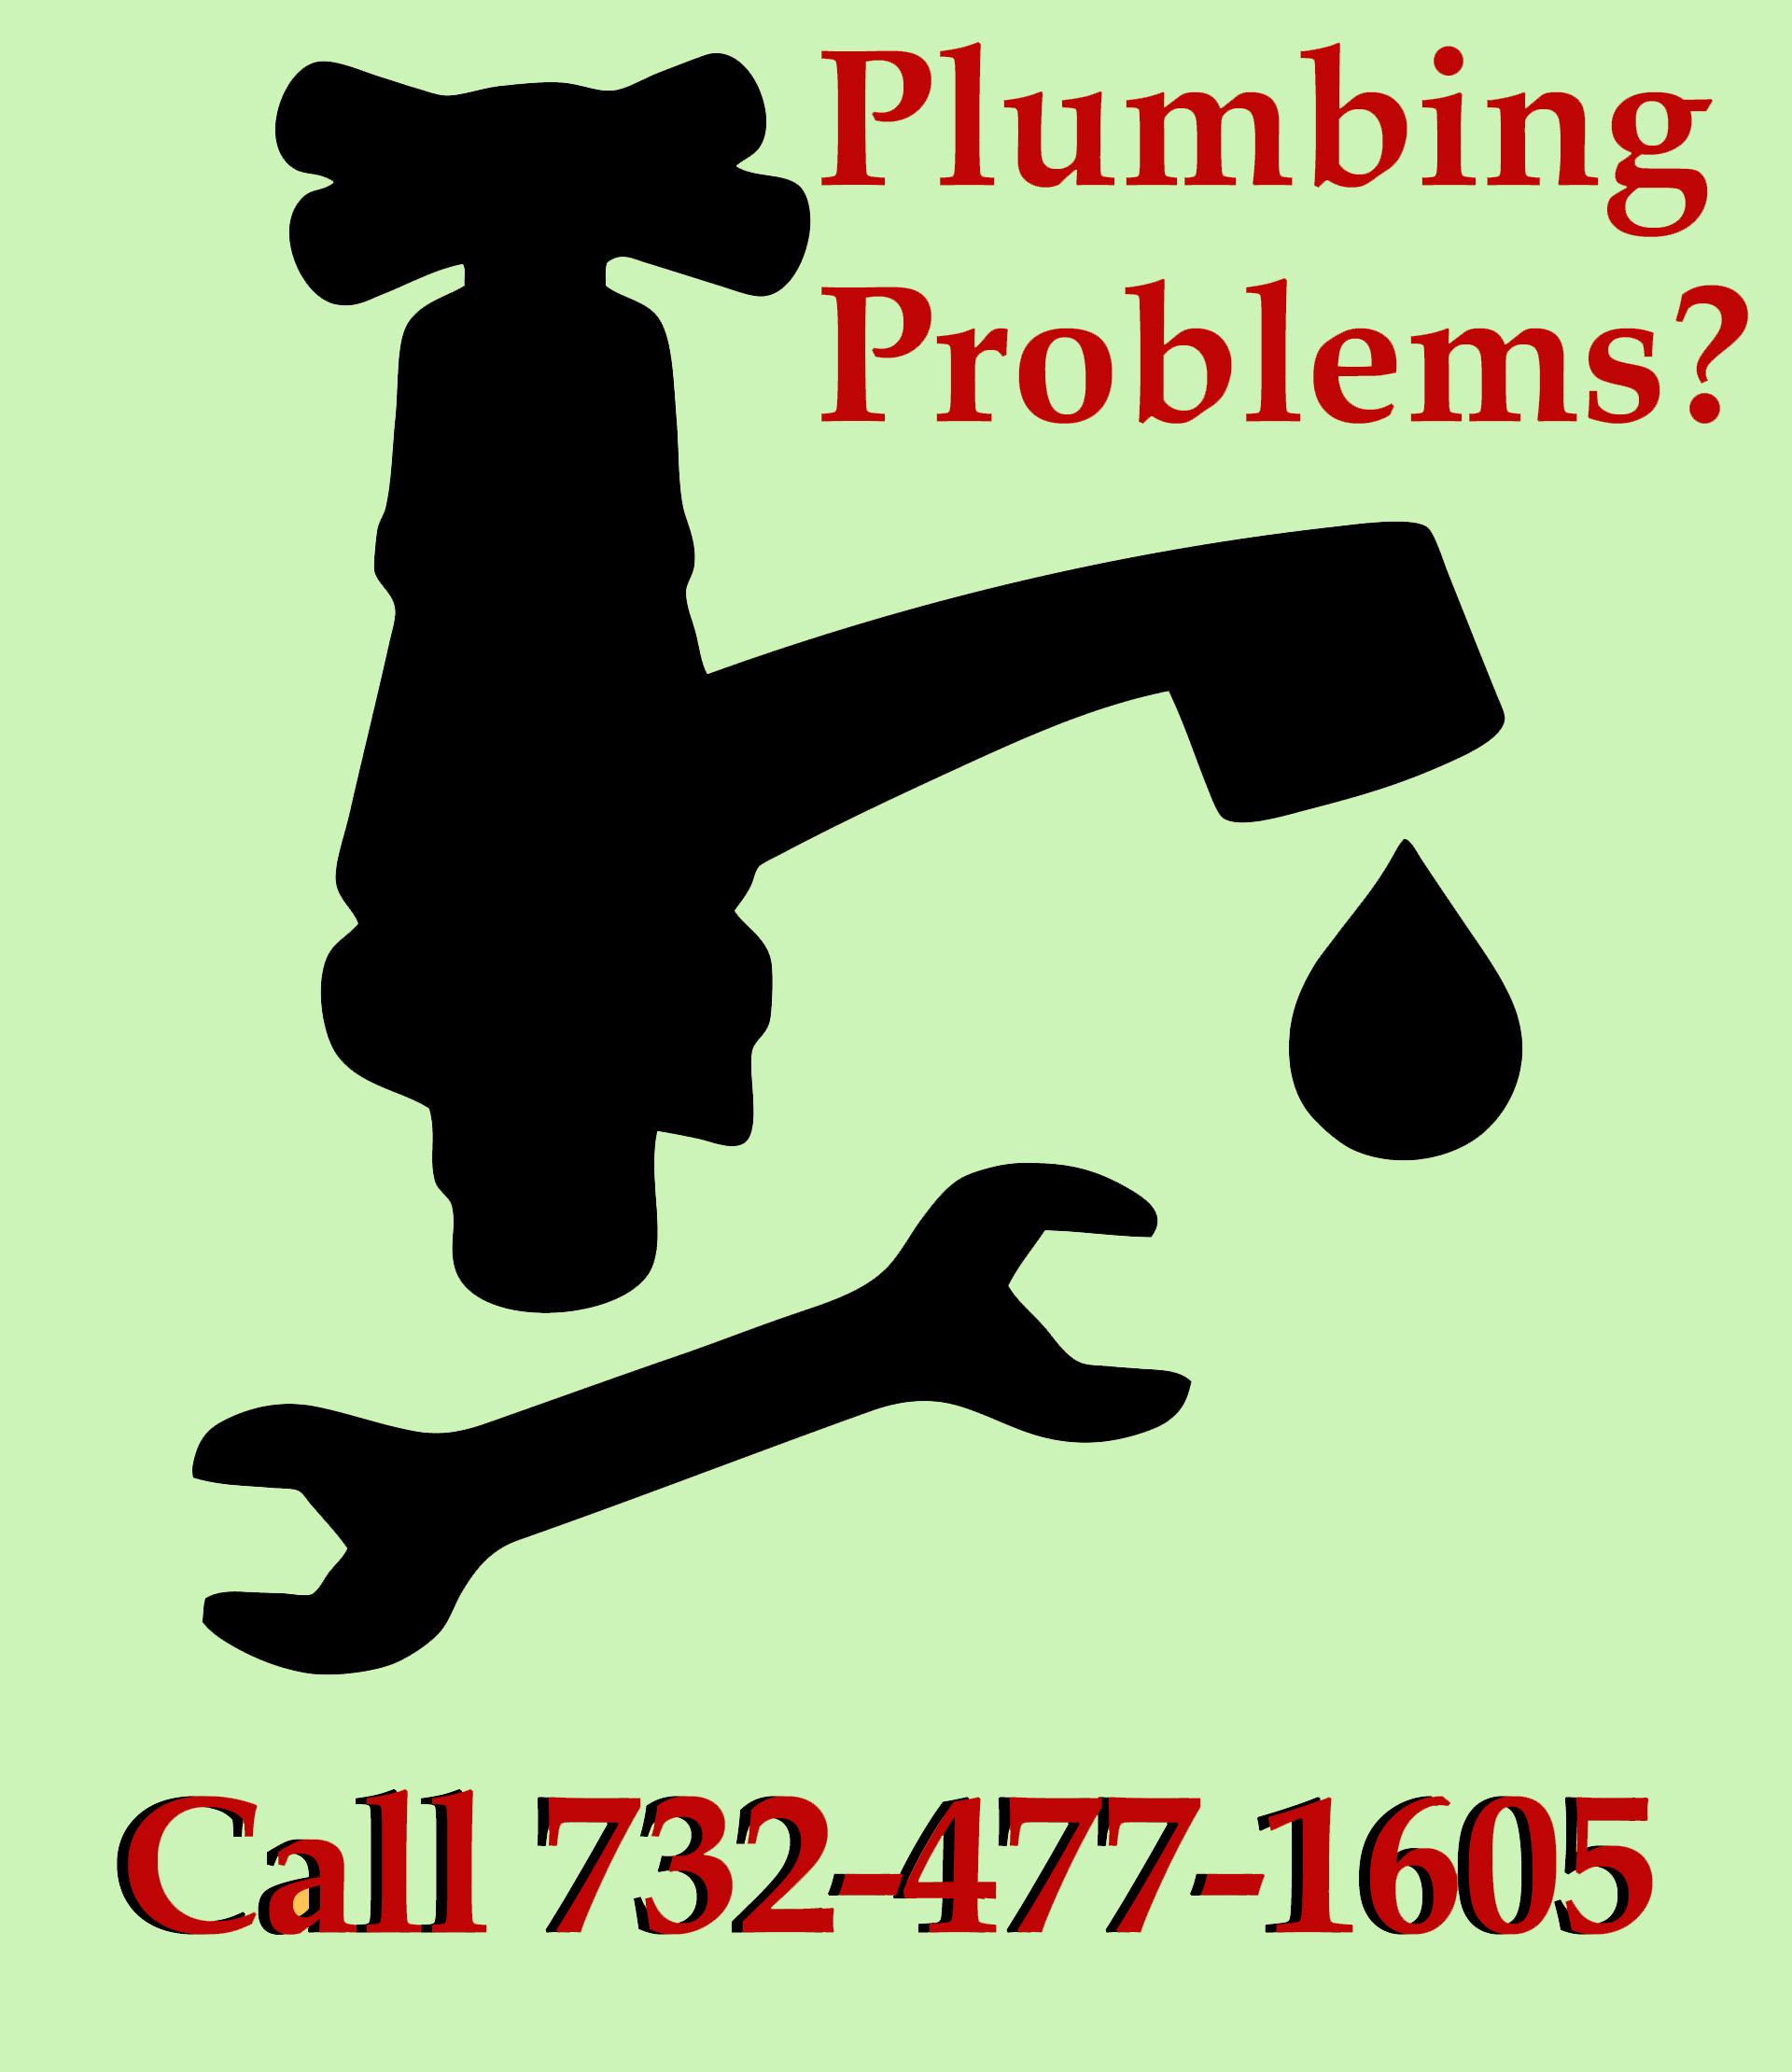 affordable plumber in Wall NJ, Wall NJ plumber, affordable plumber Wall nj